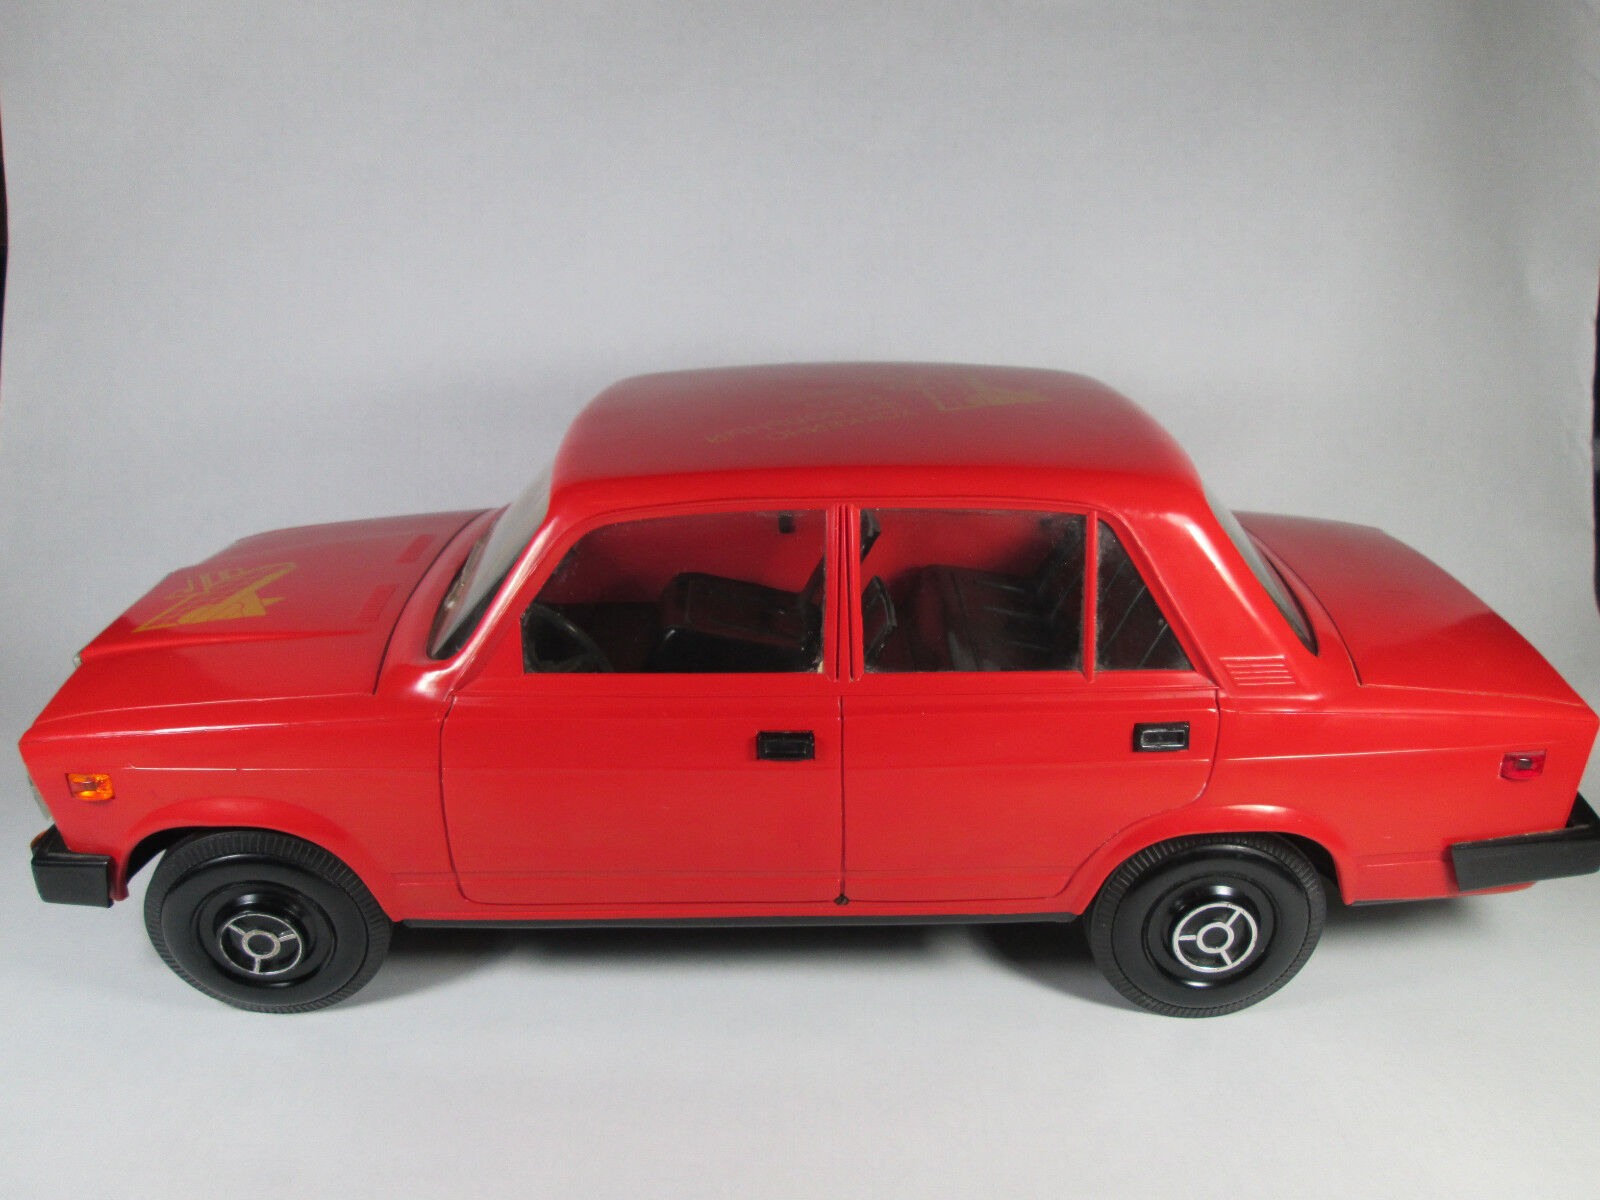 Lada Vaz OLD USSR USSR USSR Vaz 2107 vintage plastic Big car toy M 1 8 large soviet union 436941